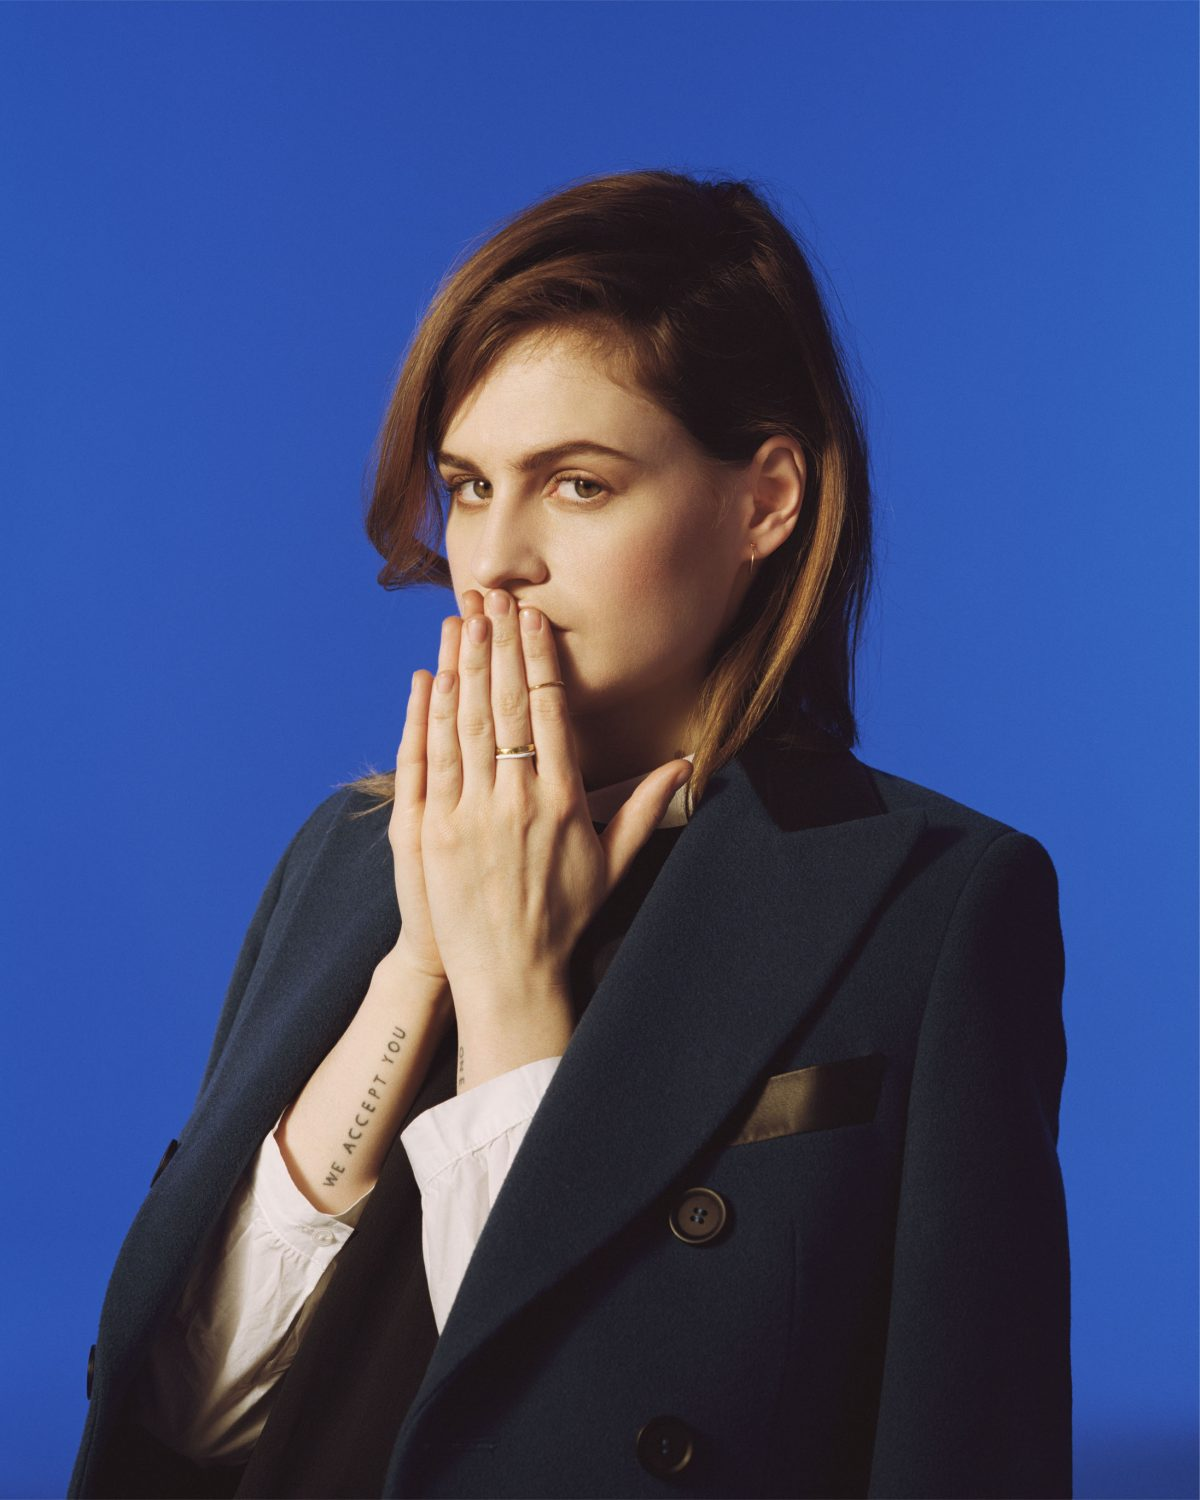 French Star Christine and the Queens Mash Up Kanye West with Old French Ballad